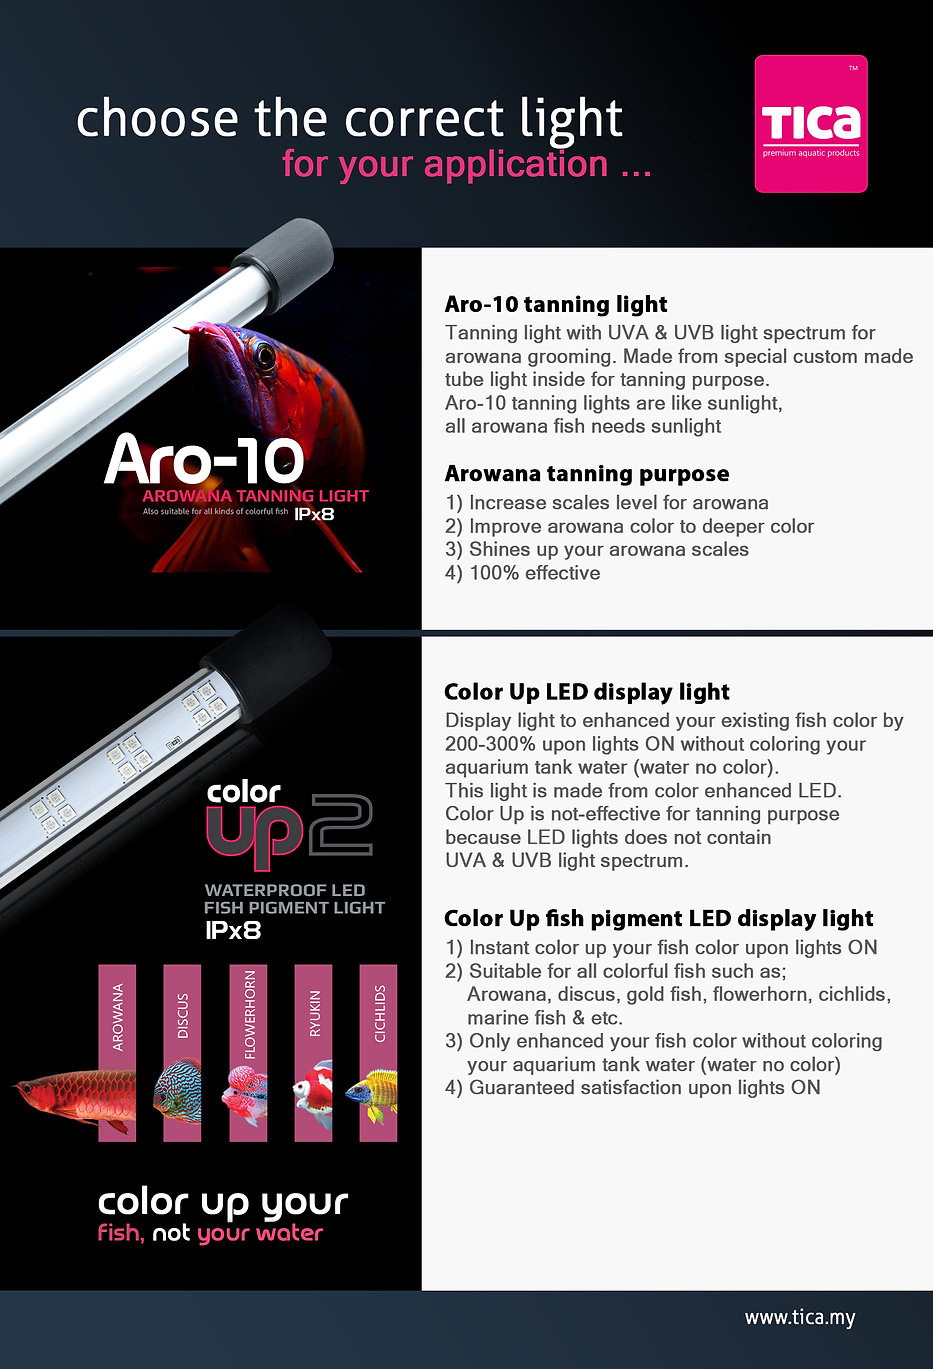 Color-Up-&-Aro-10-different-usage_2.jpg